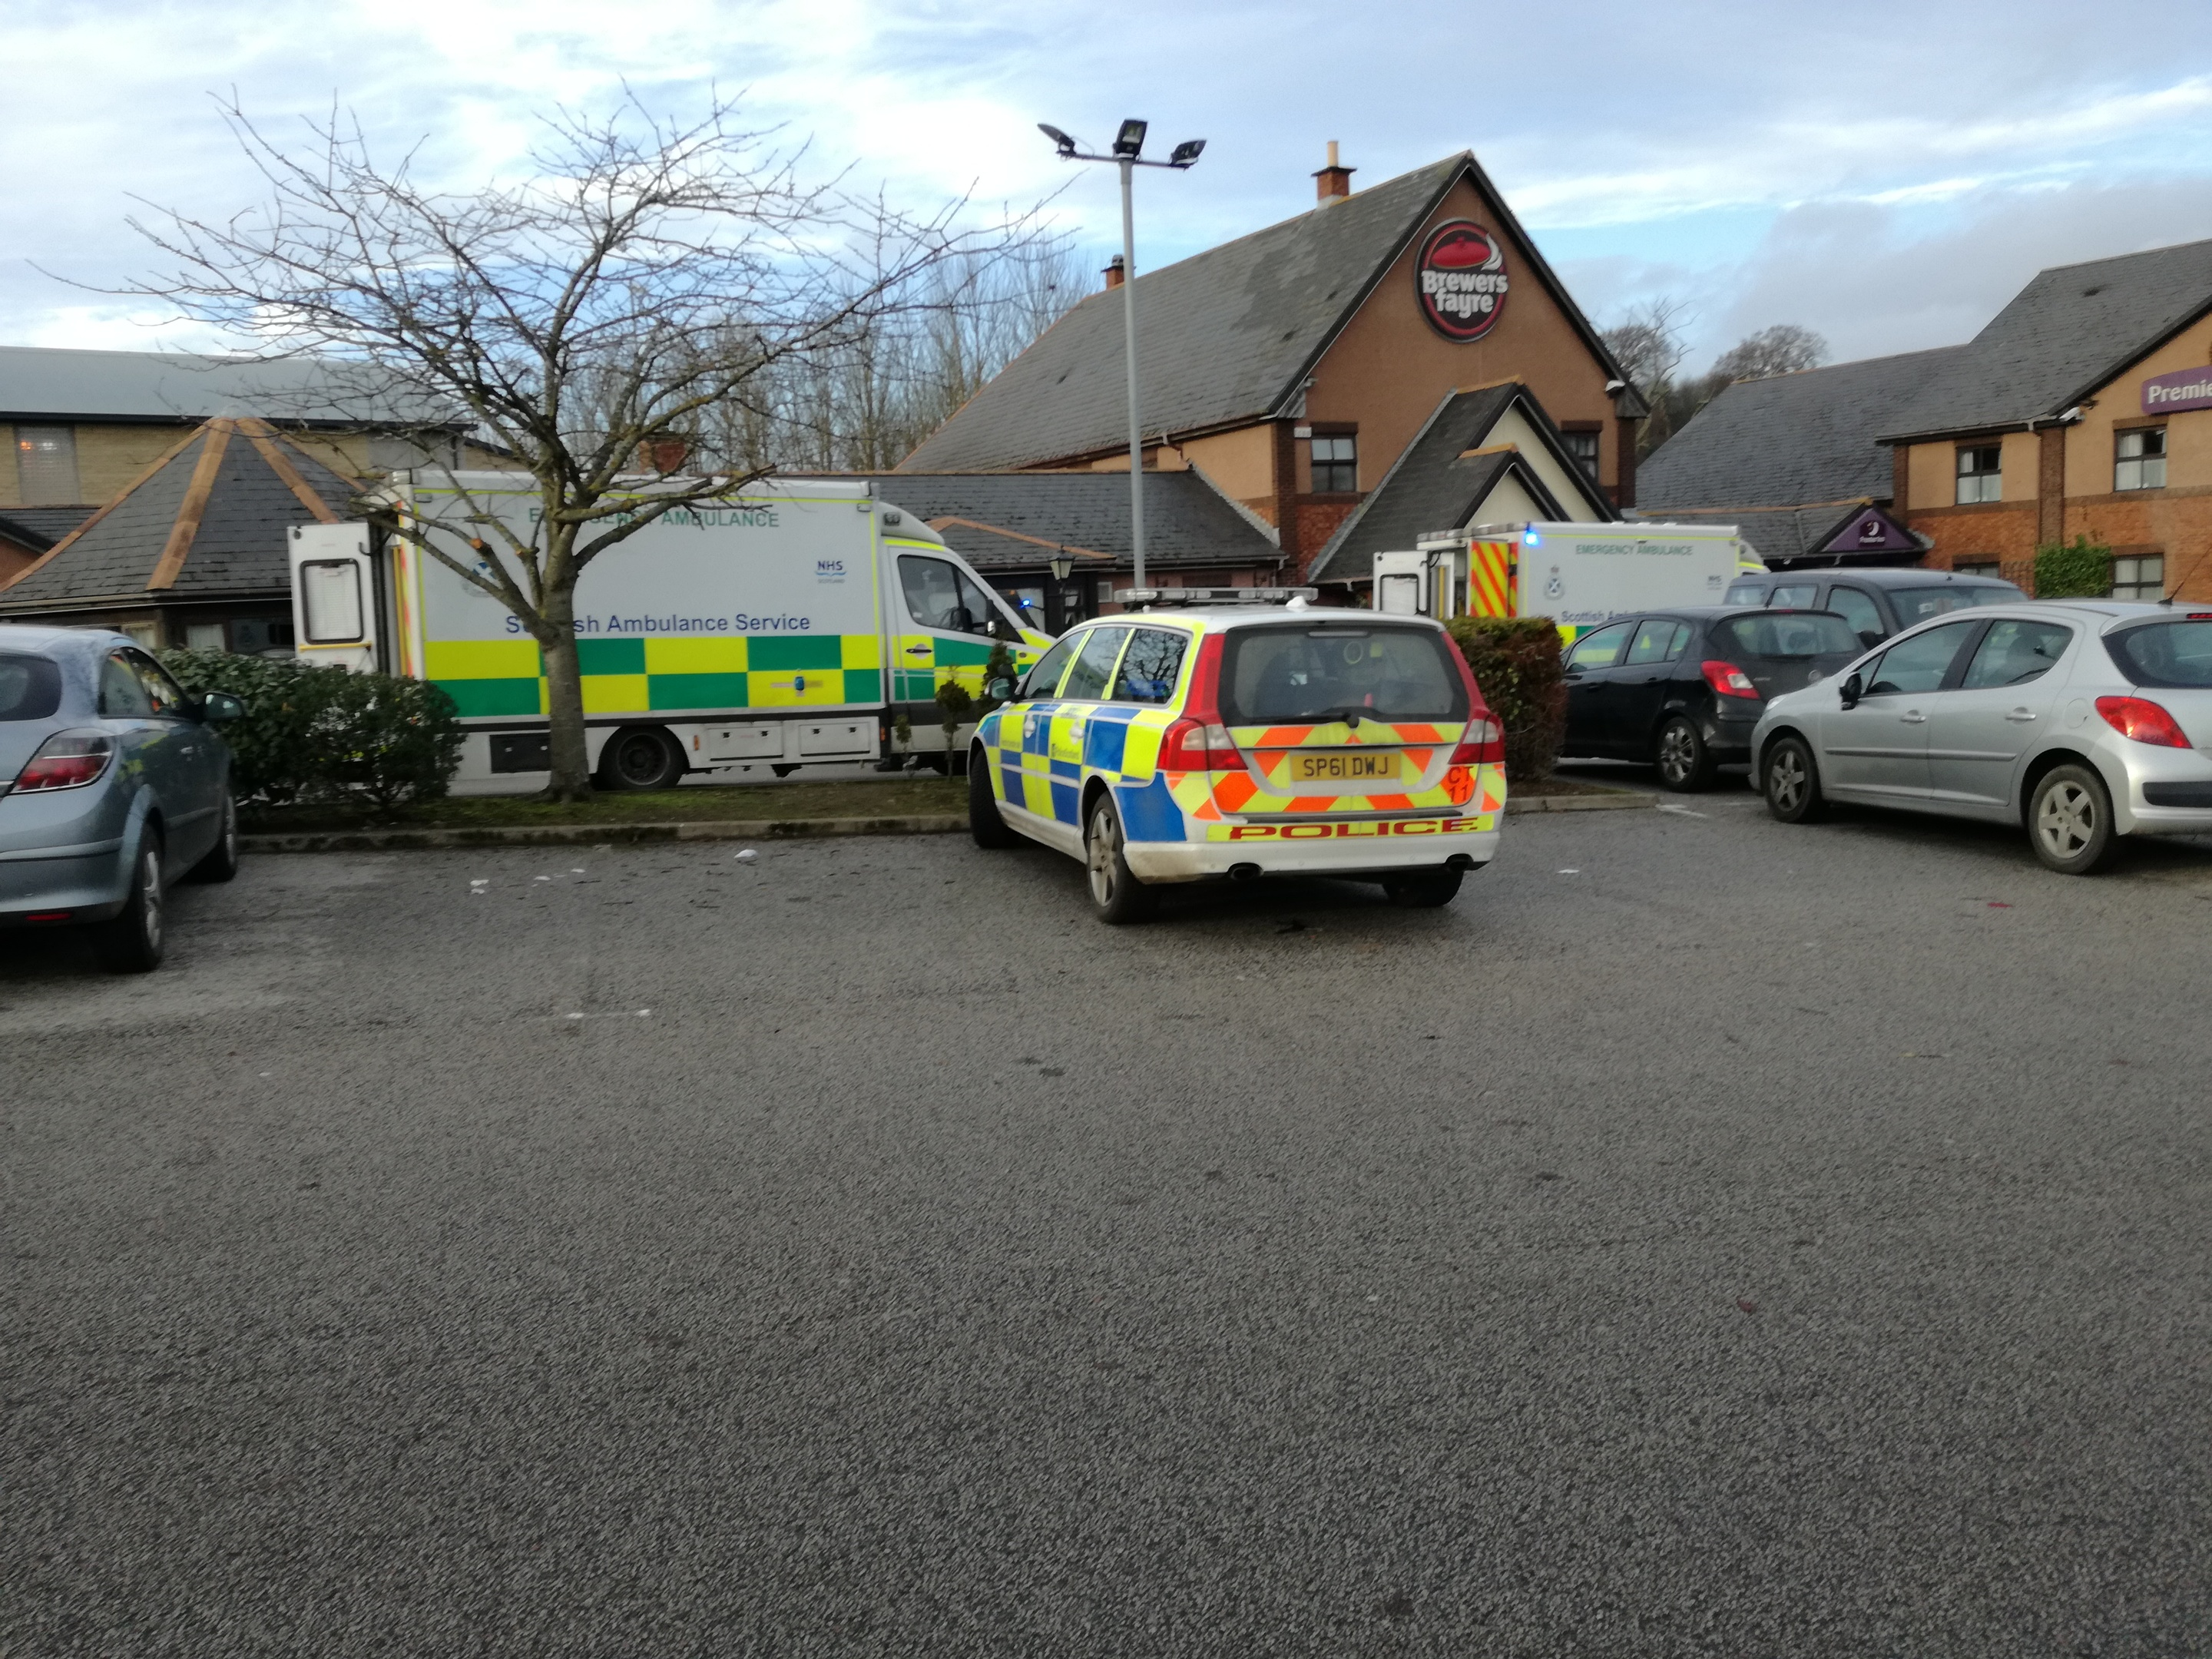 Emergency services responded after an elderly driver crashed into a wall.